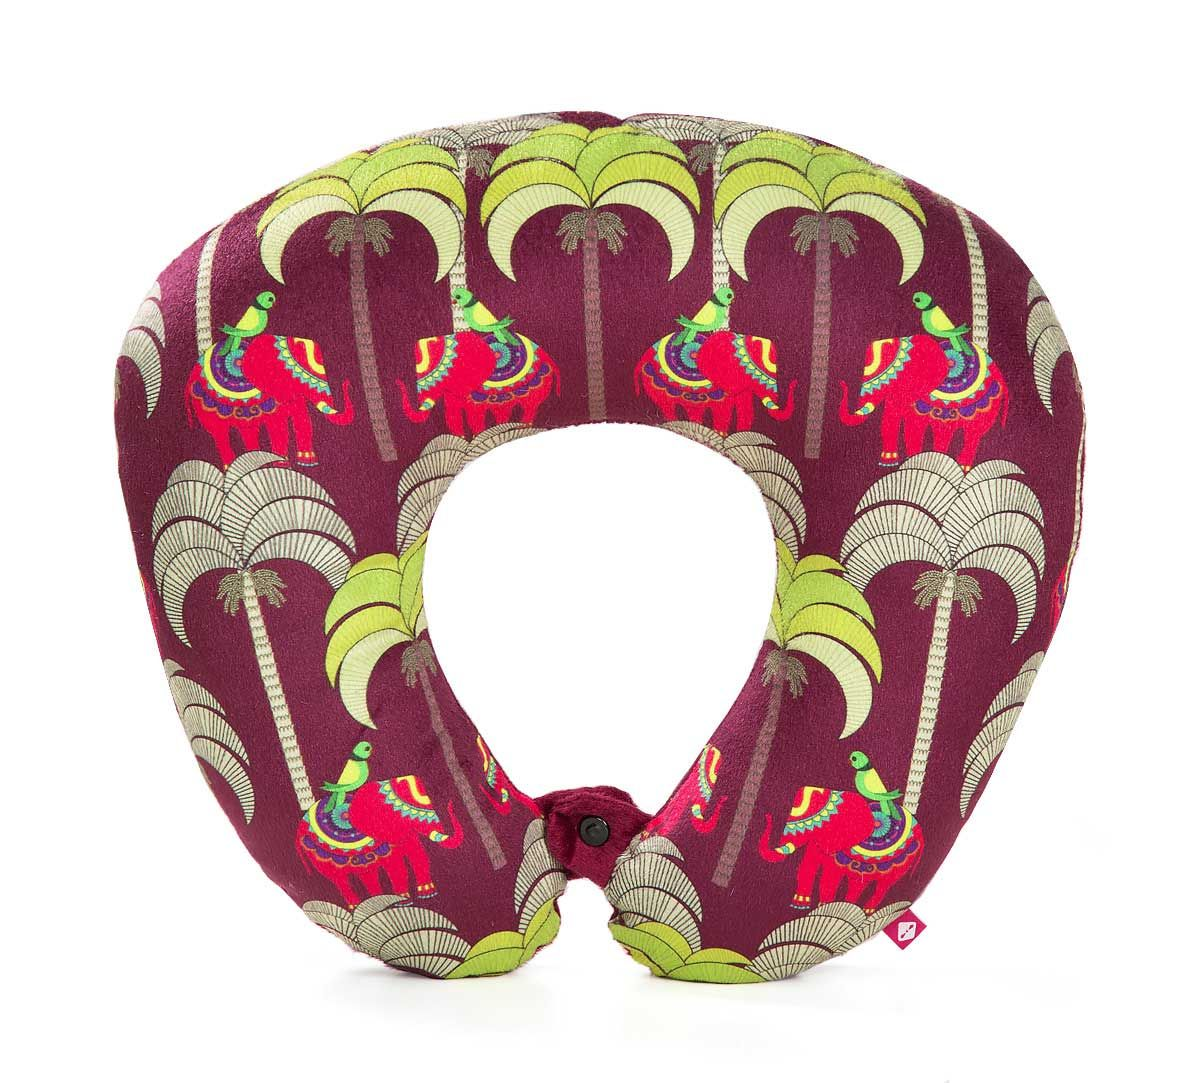 India Circus Palmeria Tusker Reiteration Neck Pillow